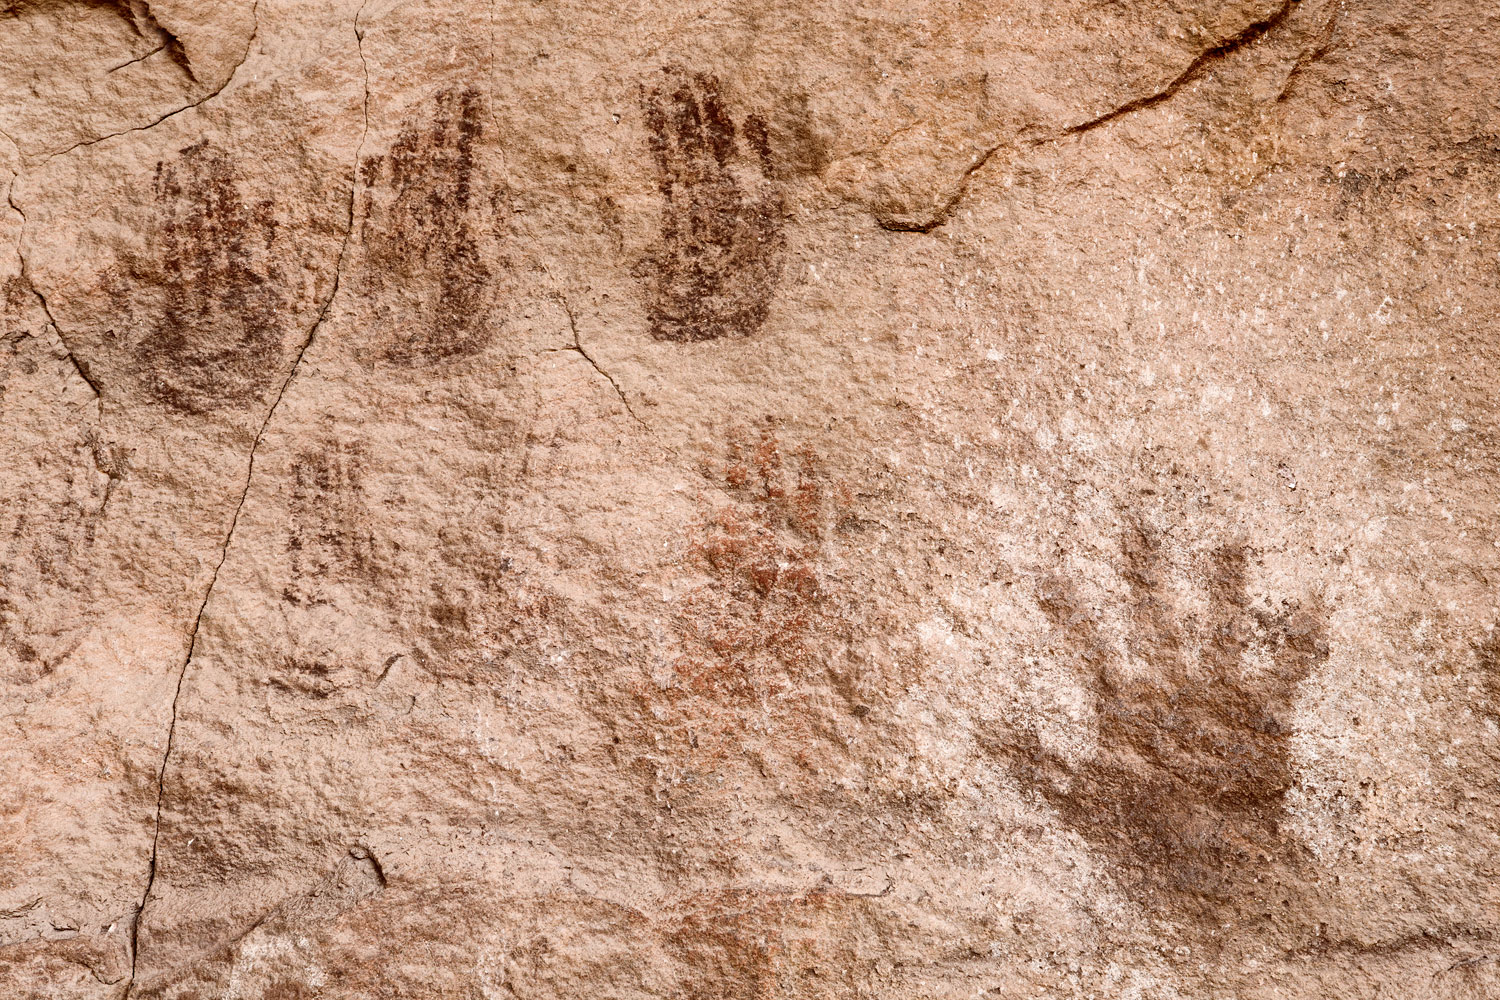 Ancient Handprints. Canyonlands National Park, UT